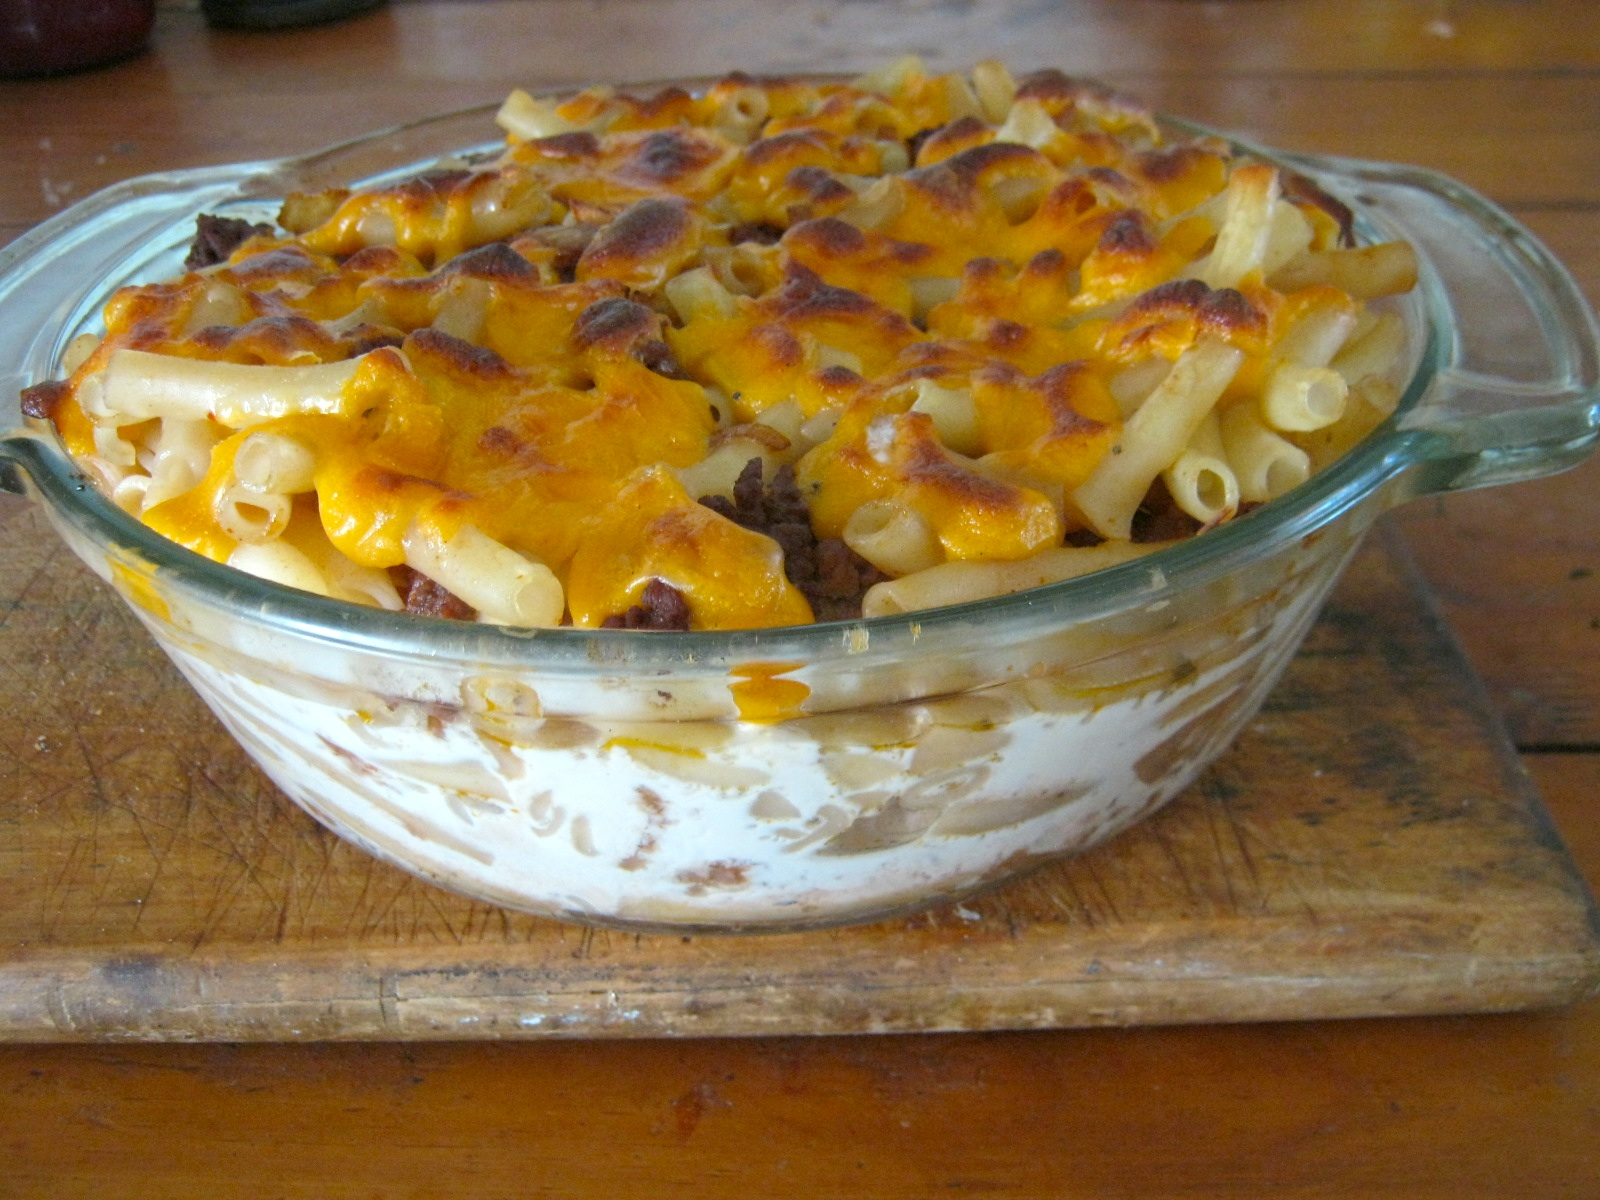 Try this Strasbourg casserole recipe from France